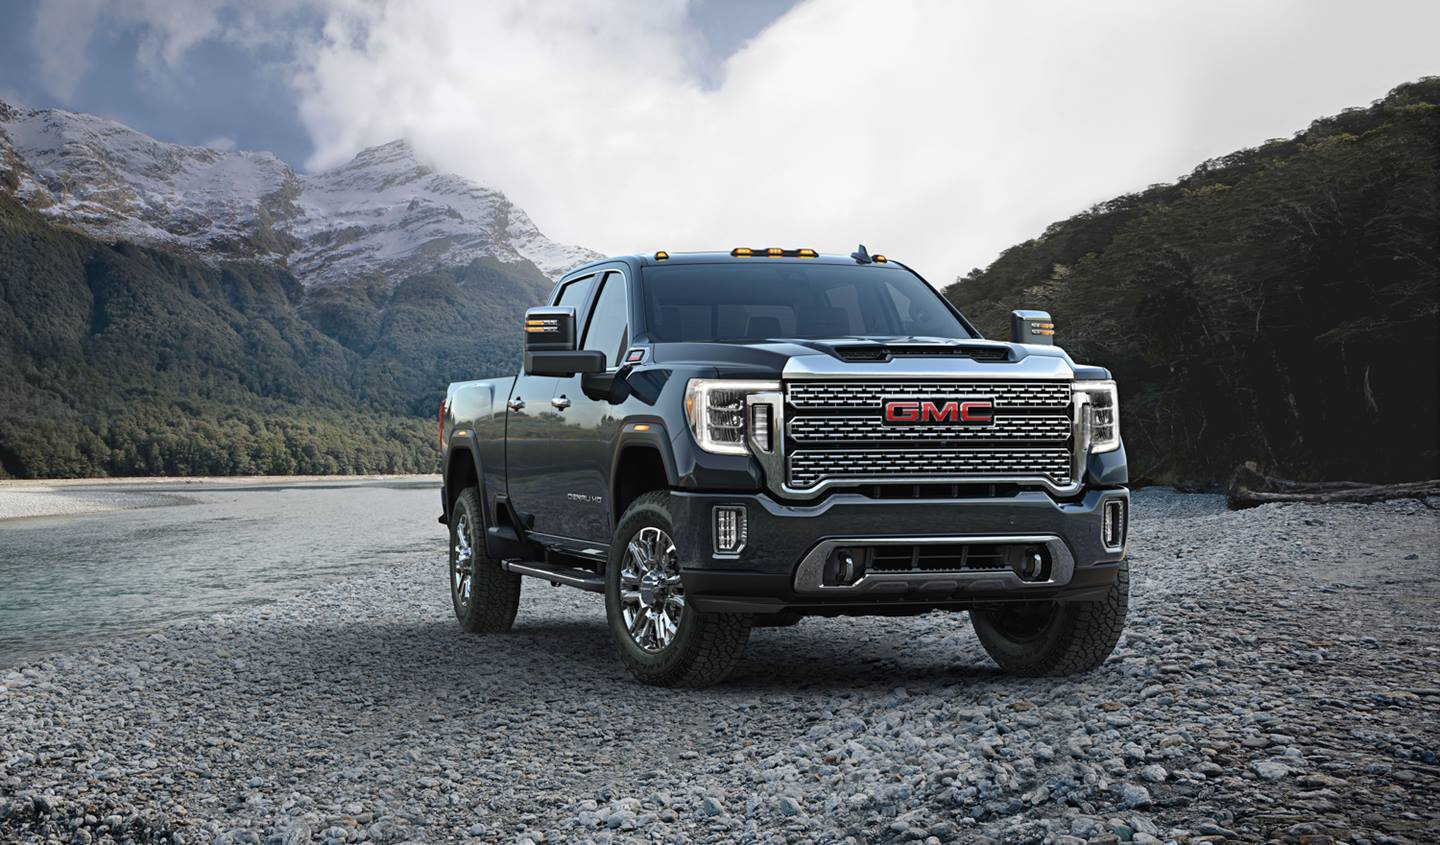 58 Great Pics Of 2020 Gmc 2500 Ratings with Pics Of 2020 Gmc 2500